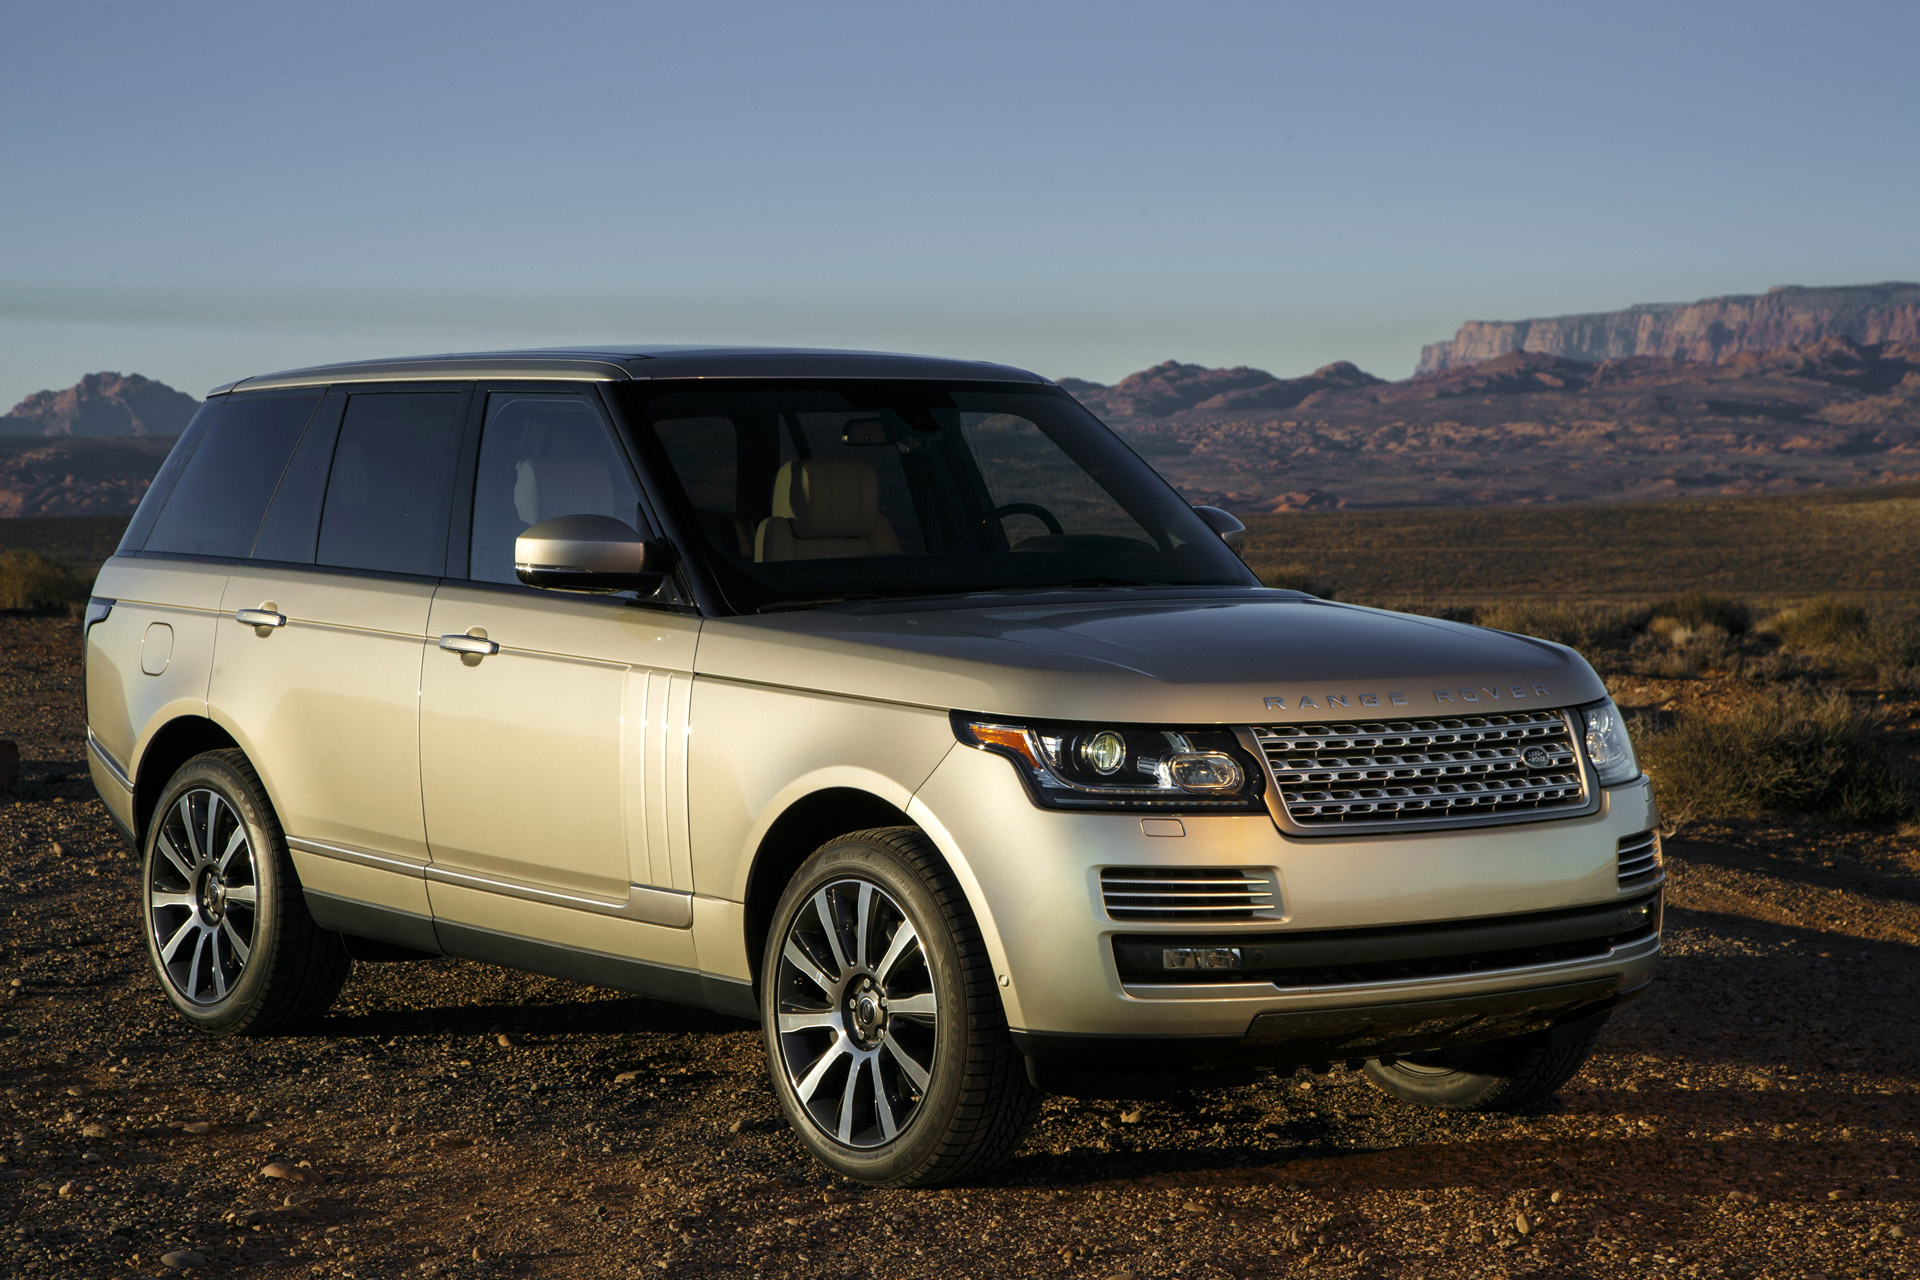 2015 Land Rover Range Rover Safety Review And Crash Test